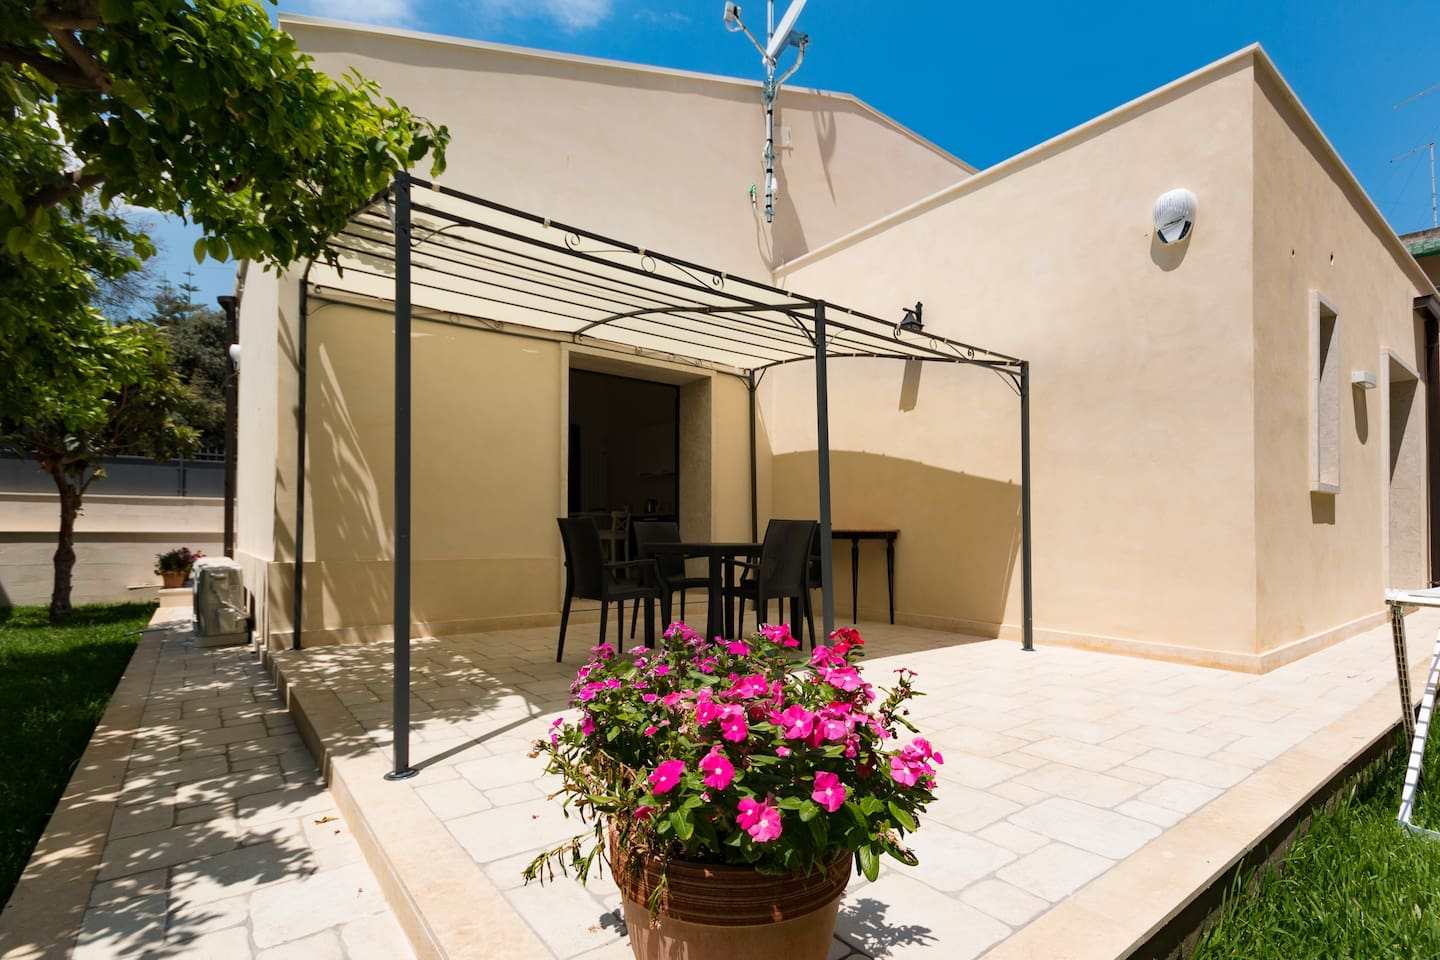 Outdoor space of the apartment